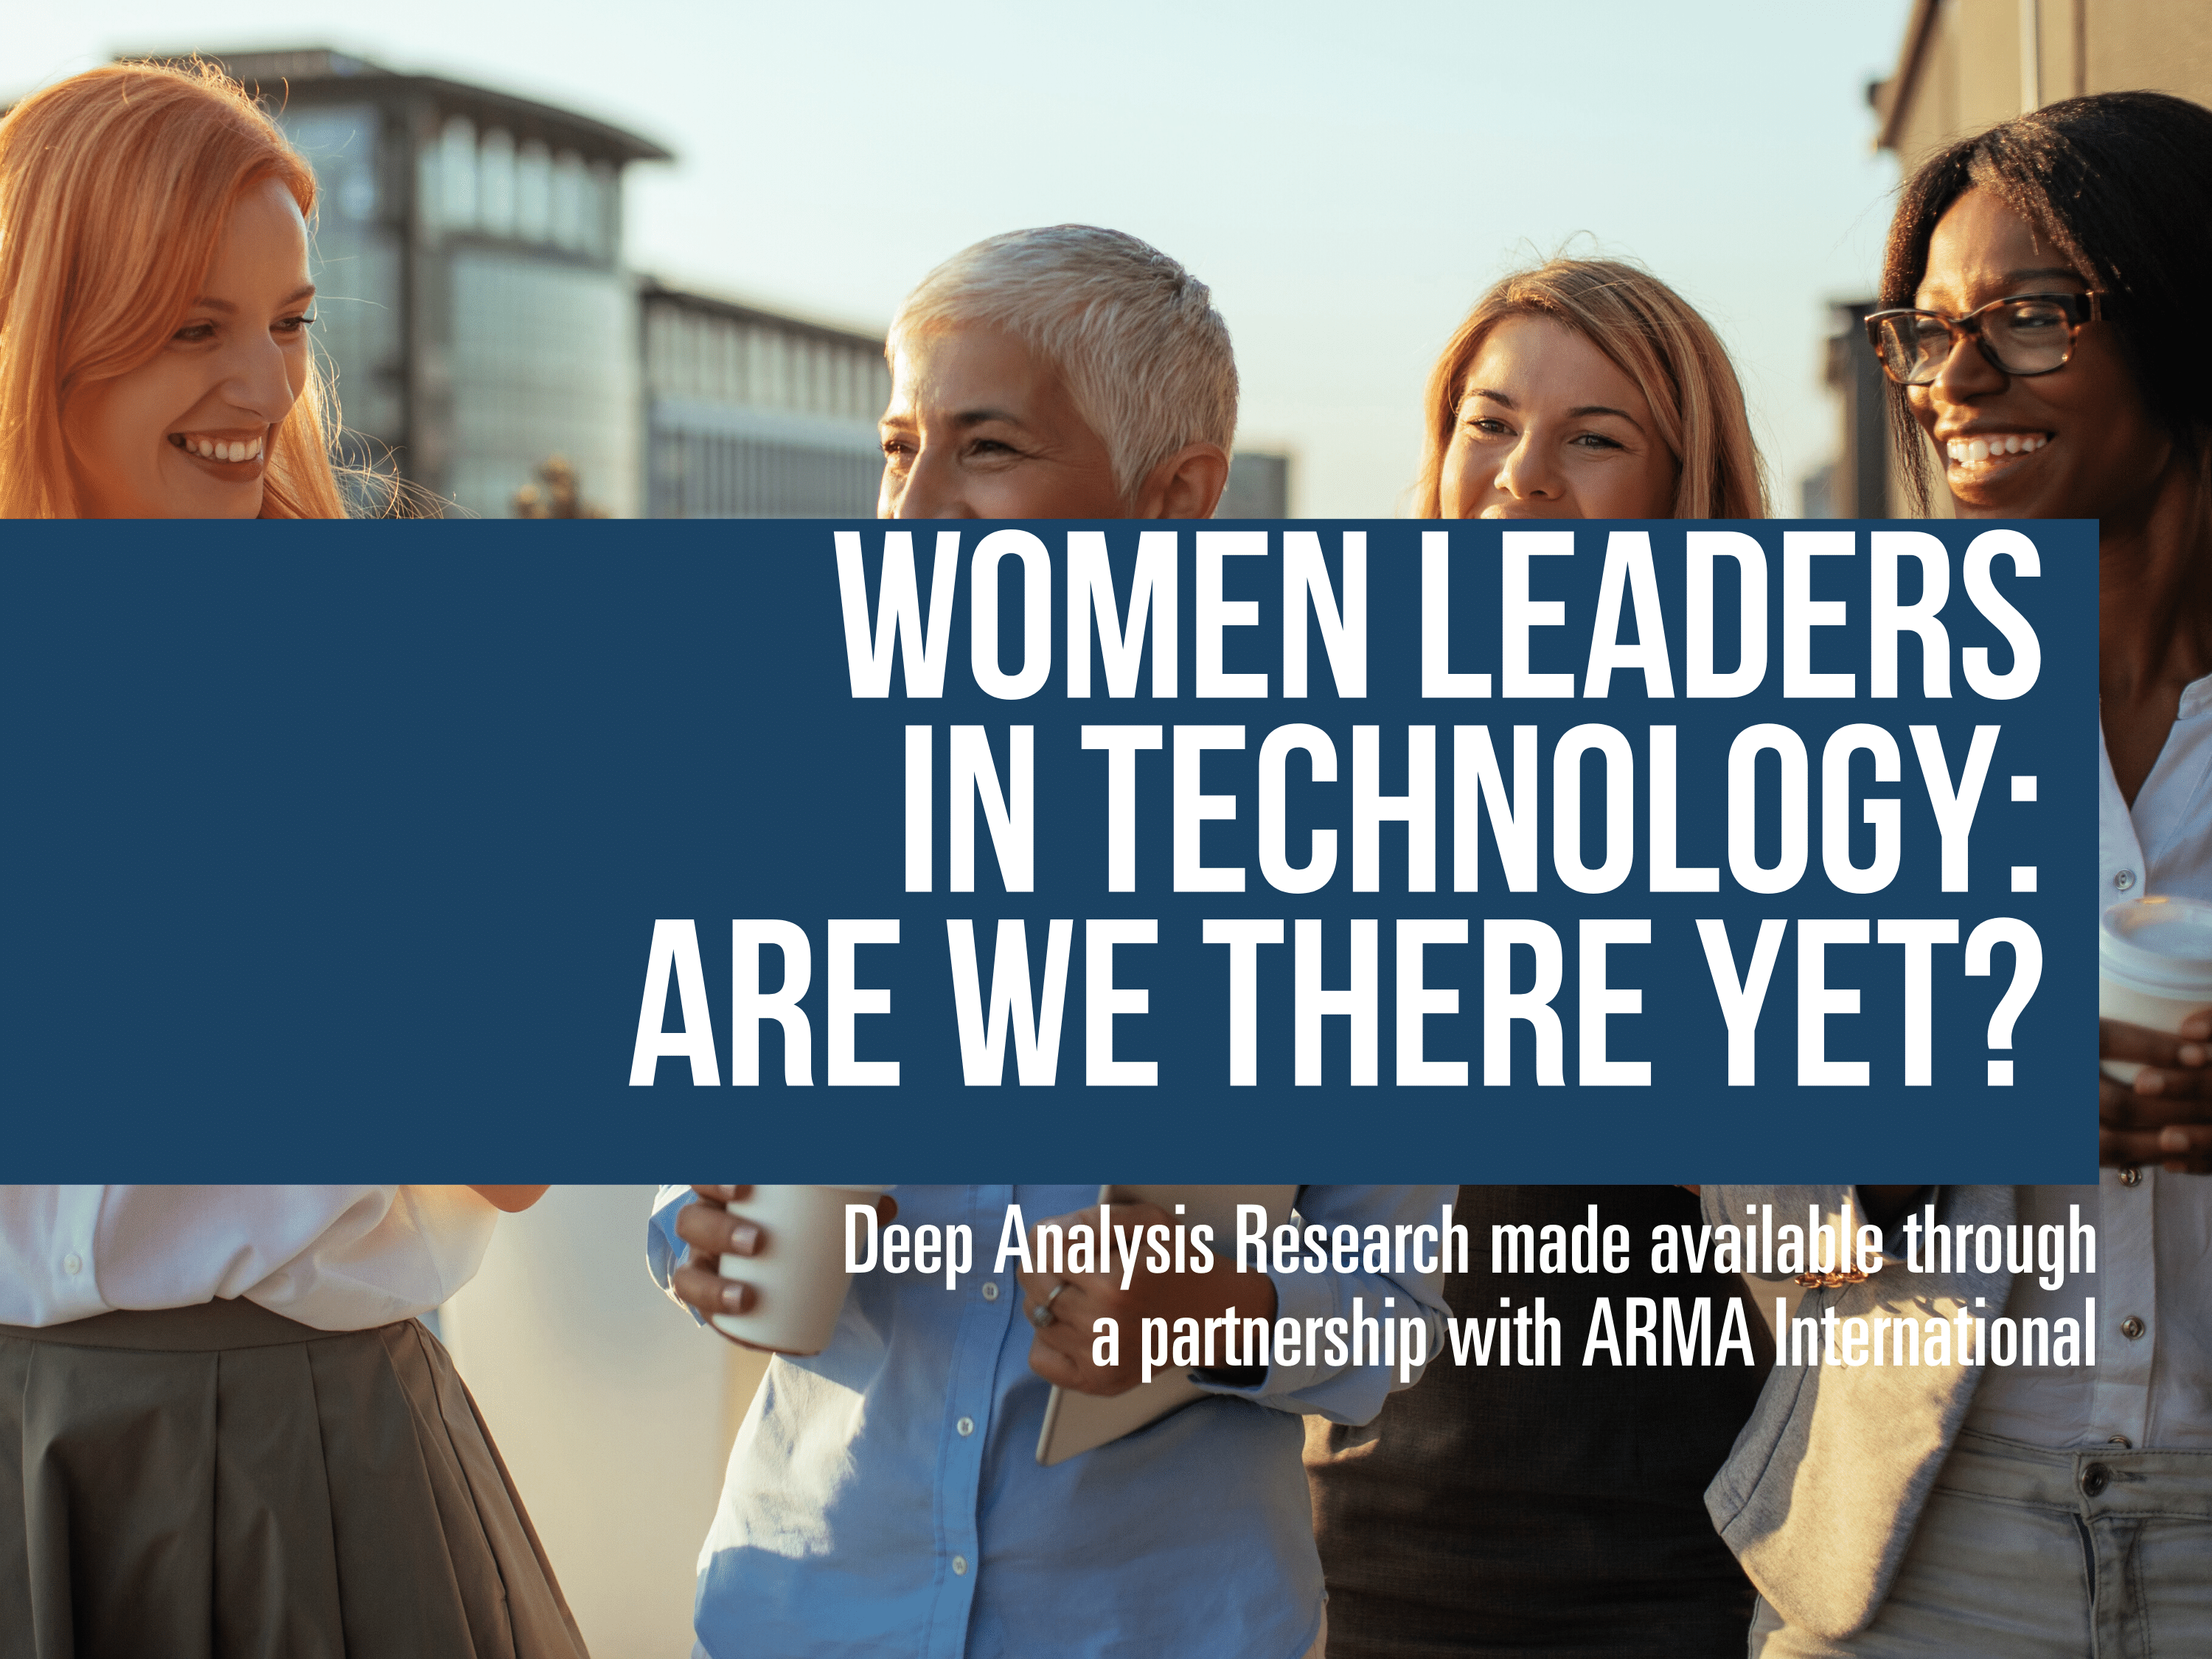 Women Leaders in Technology: Are We There Yet?